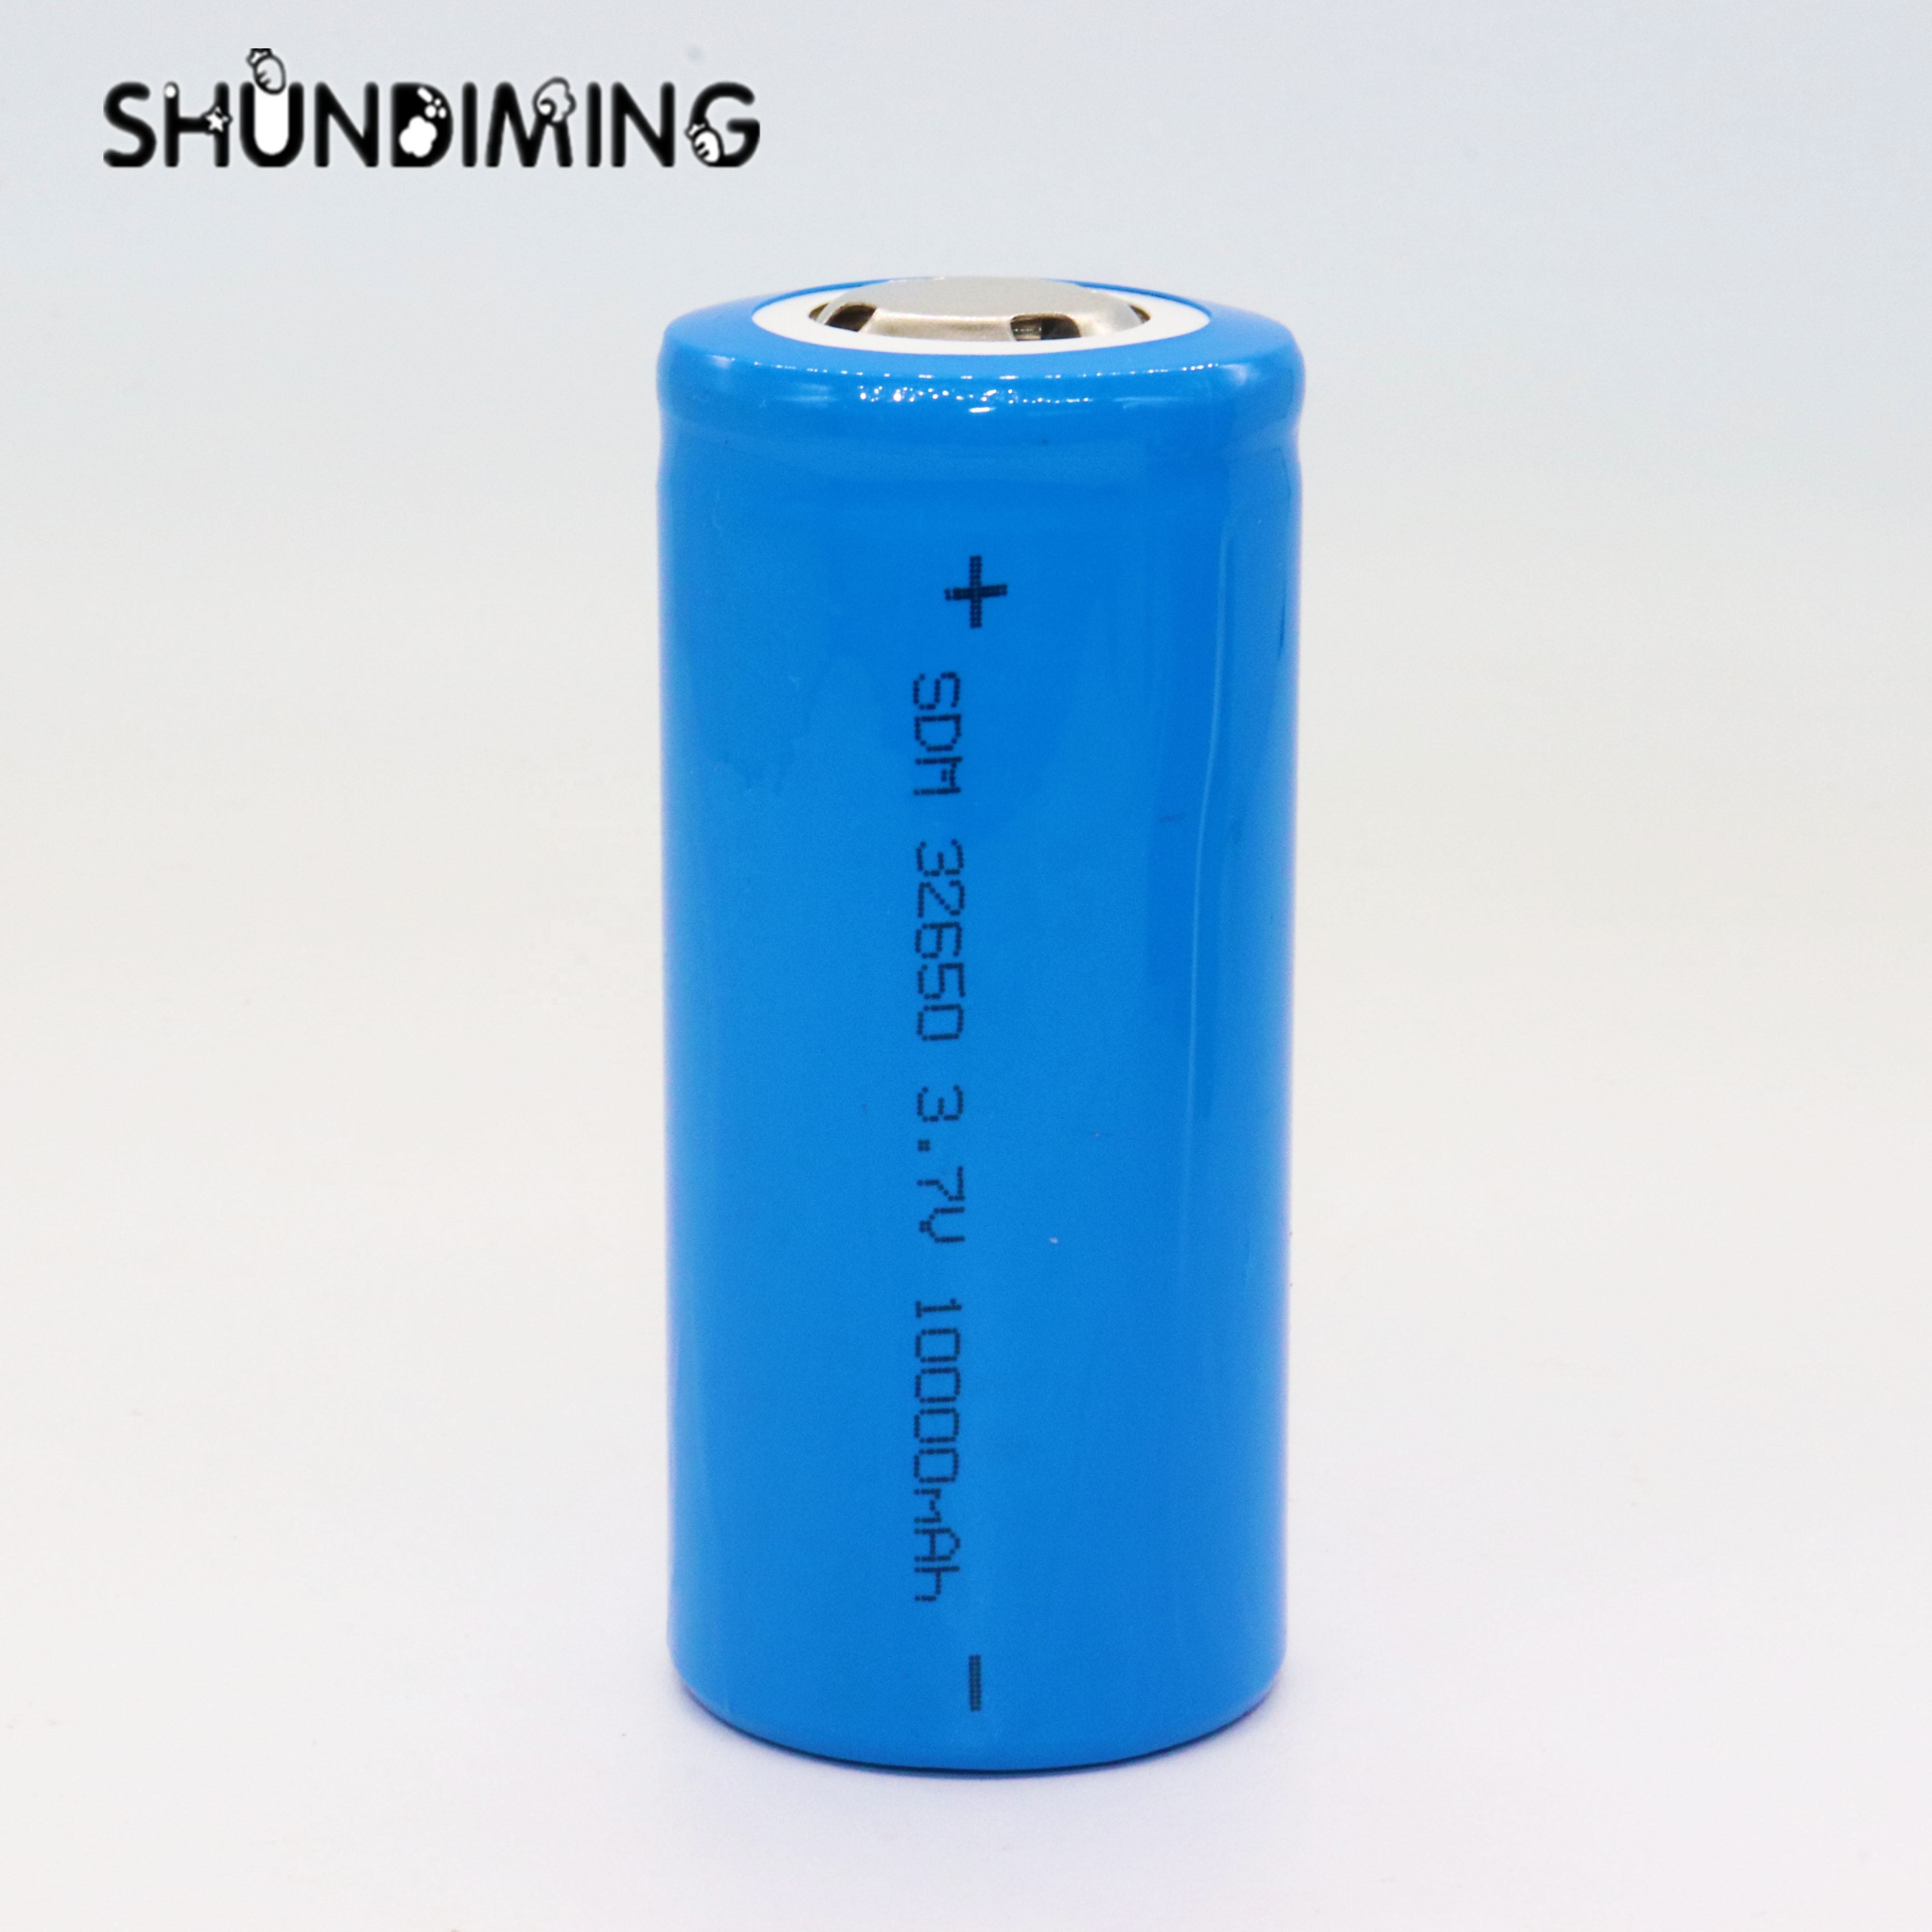 high capacity li-ion battery 32650 3.2v 10000mah rechargeable lifepo4 car battery cell ICR32650